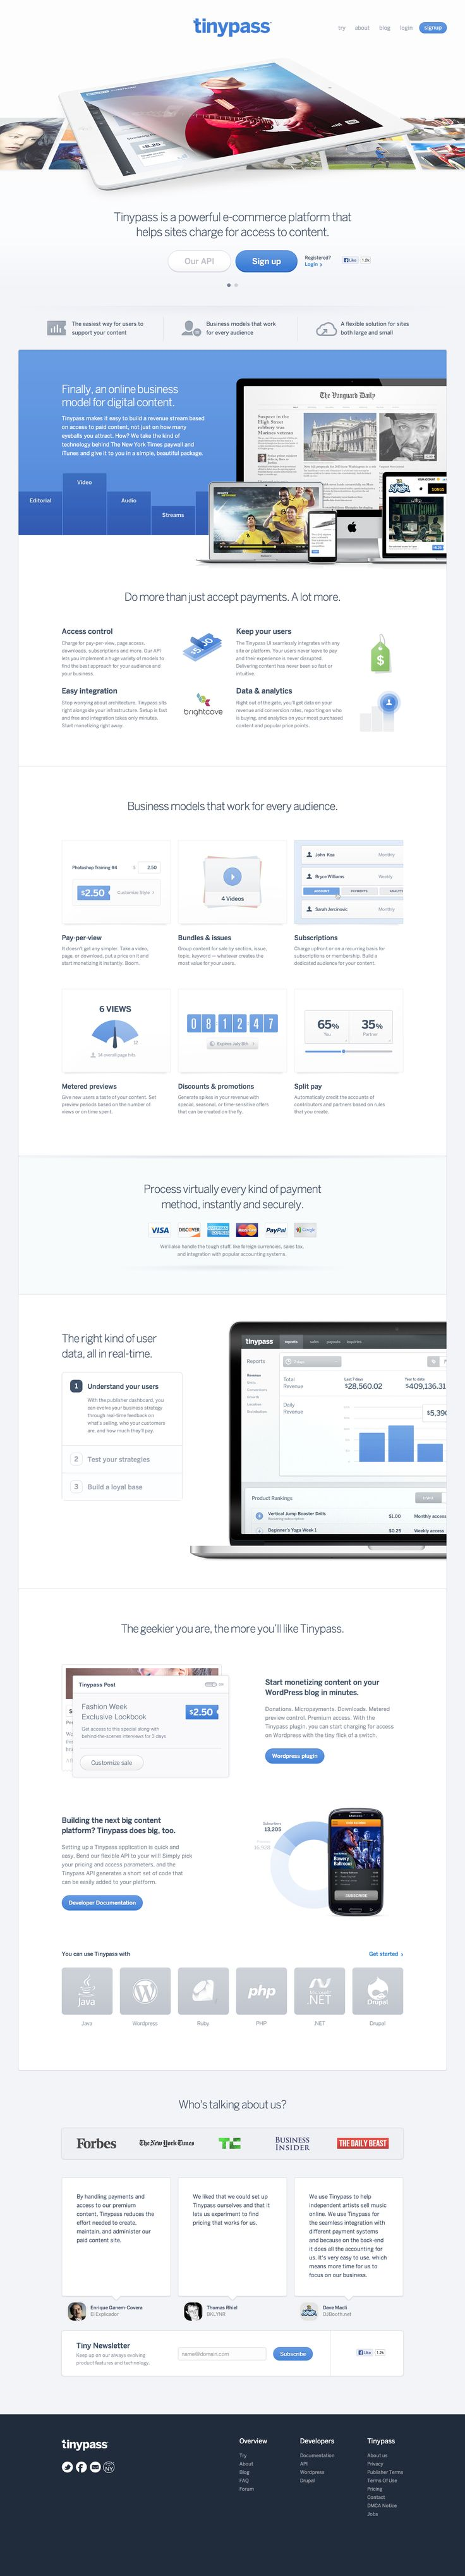 Tiny Pass Tinypass.com Website - Homepage #website #corporate #cool #application